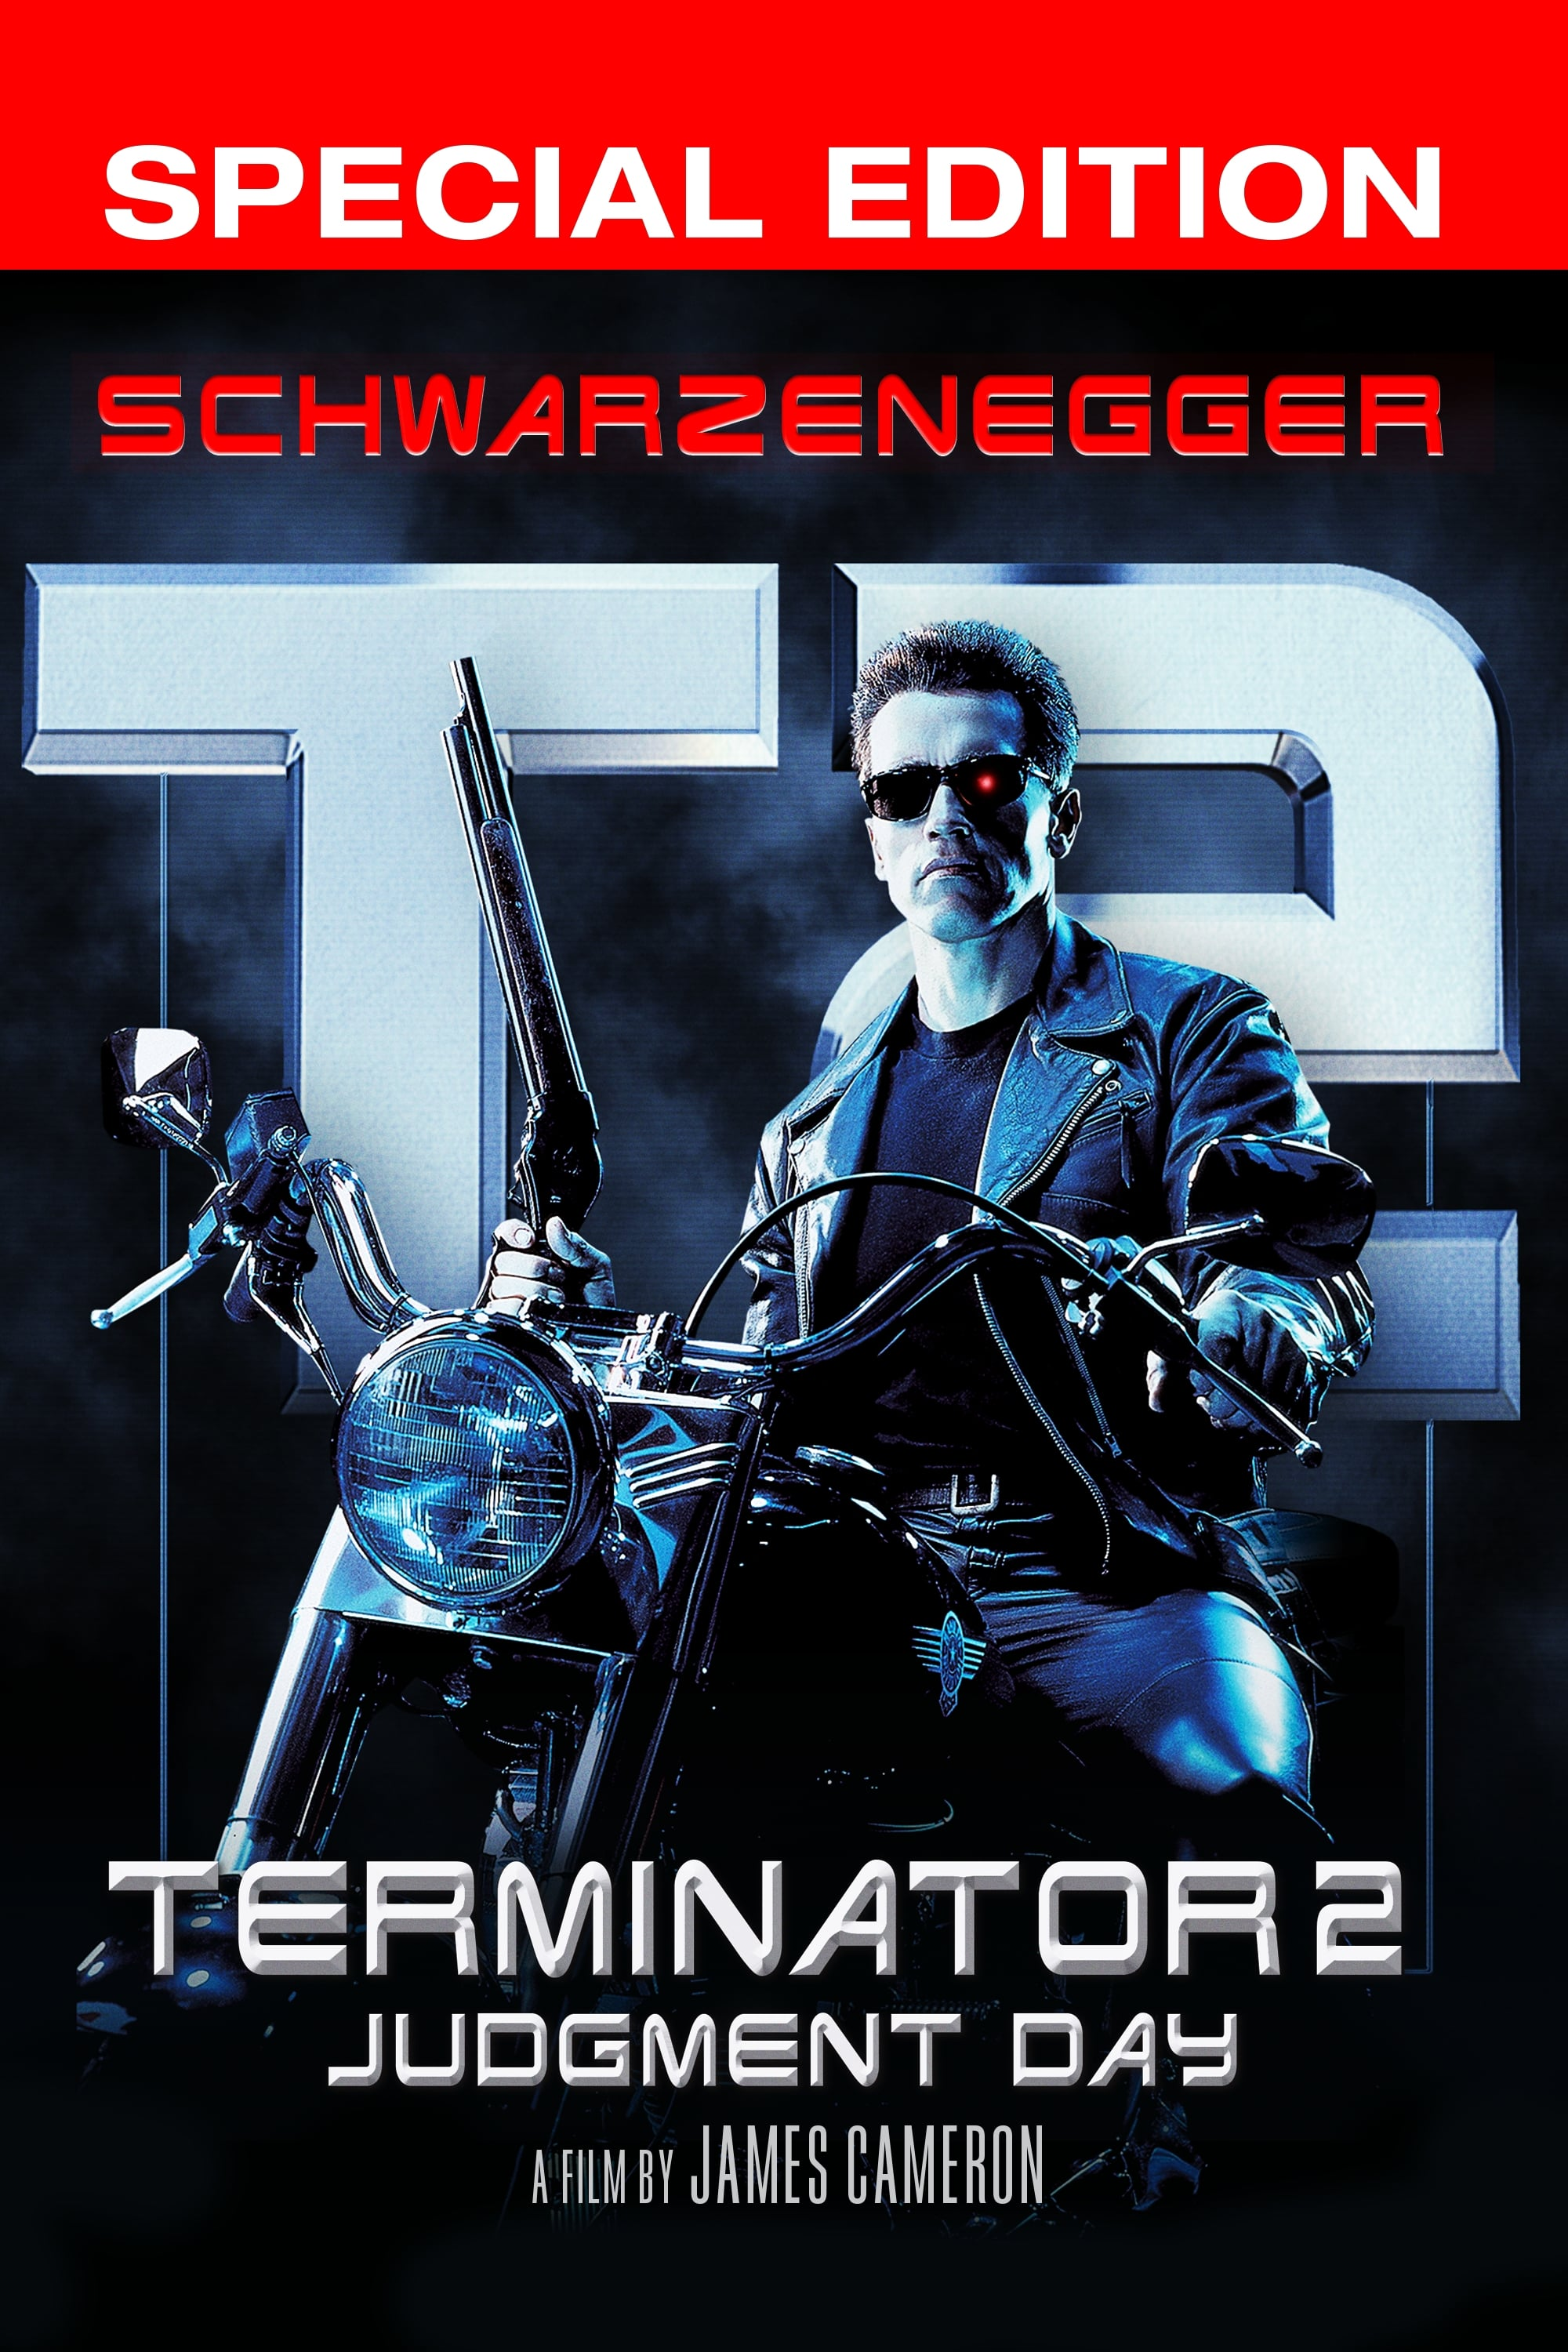 Terminator 2: Judgment Day (1991) - Posters — The Movie ...